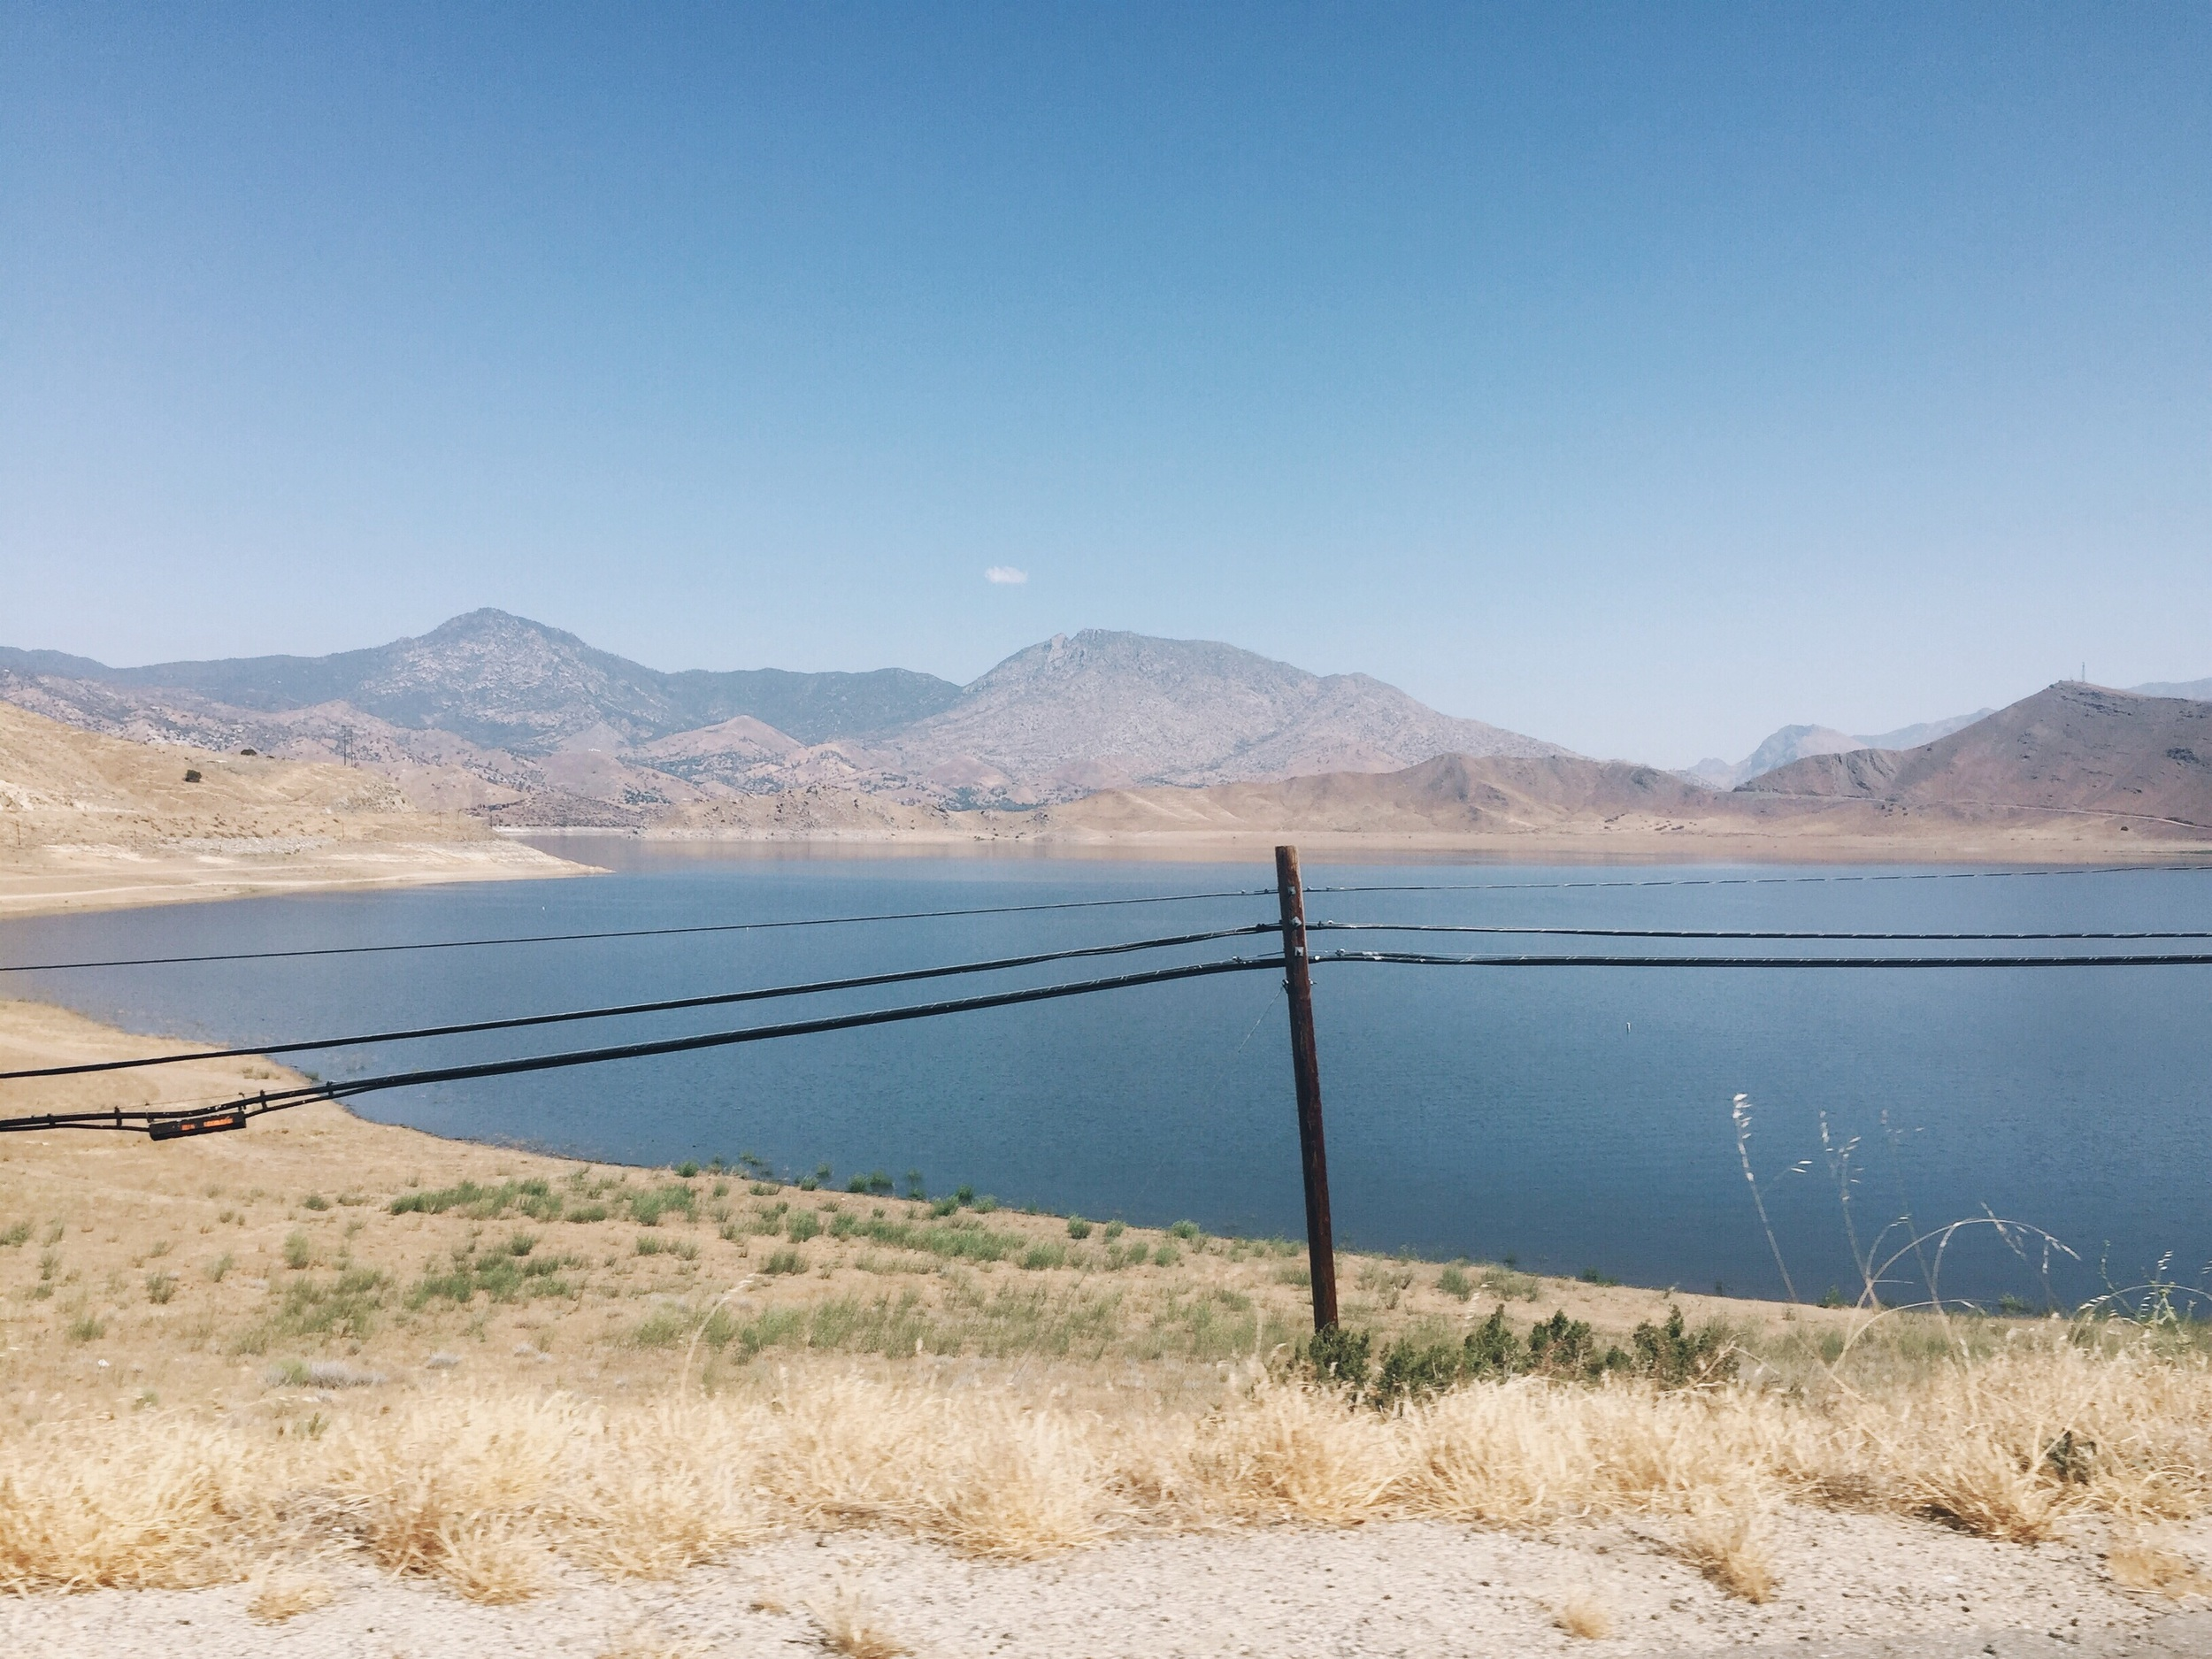 Lake Isabella! Always so good to see water in the desert.